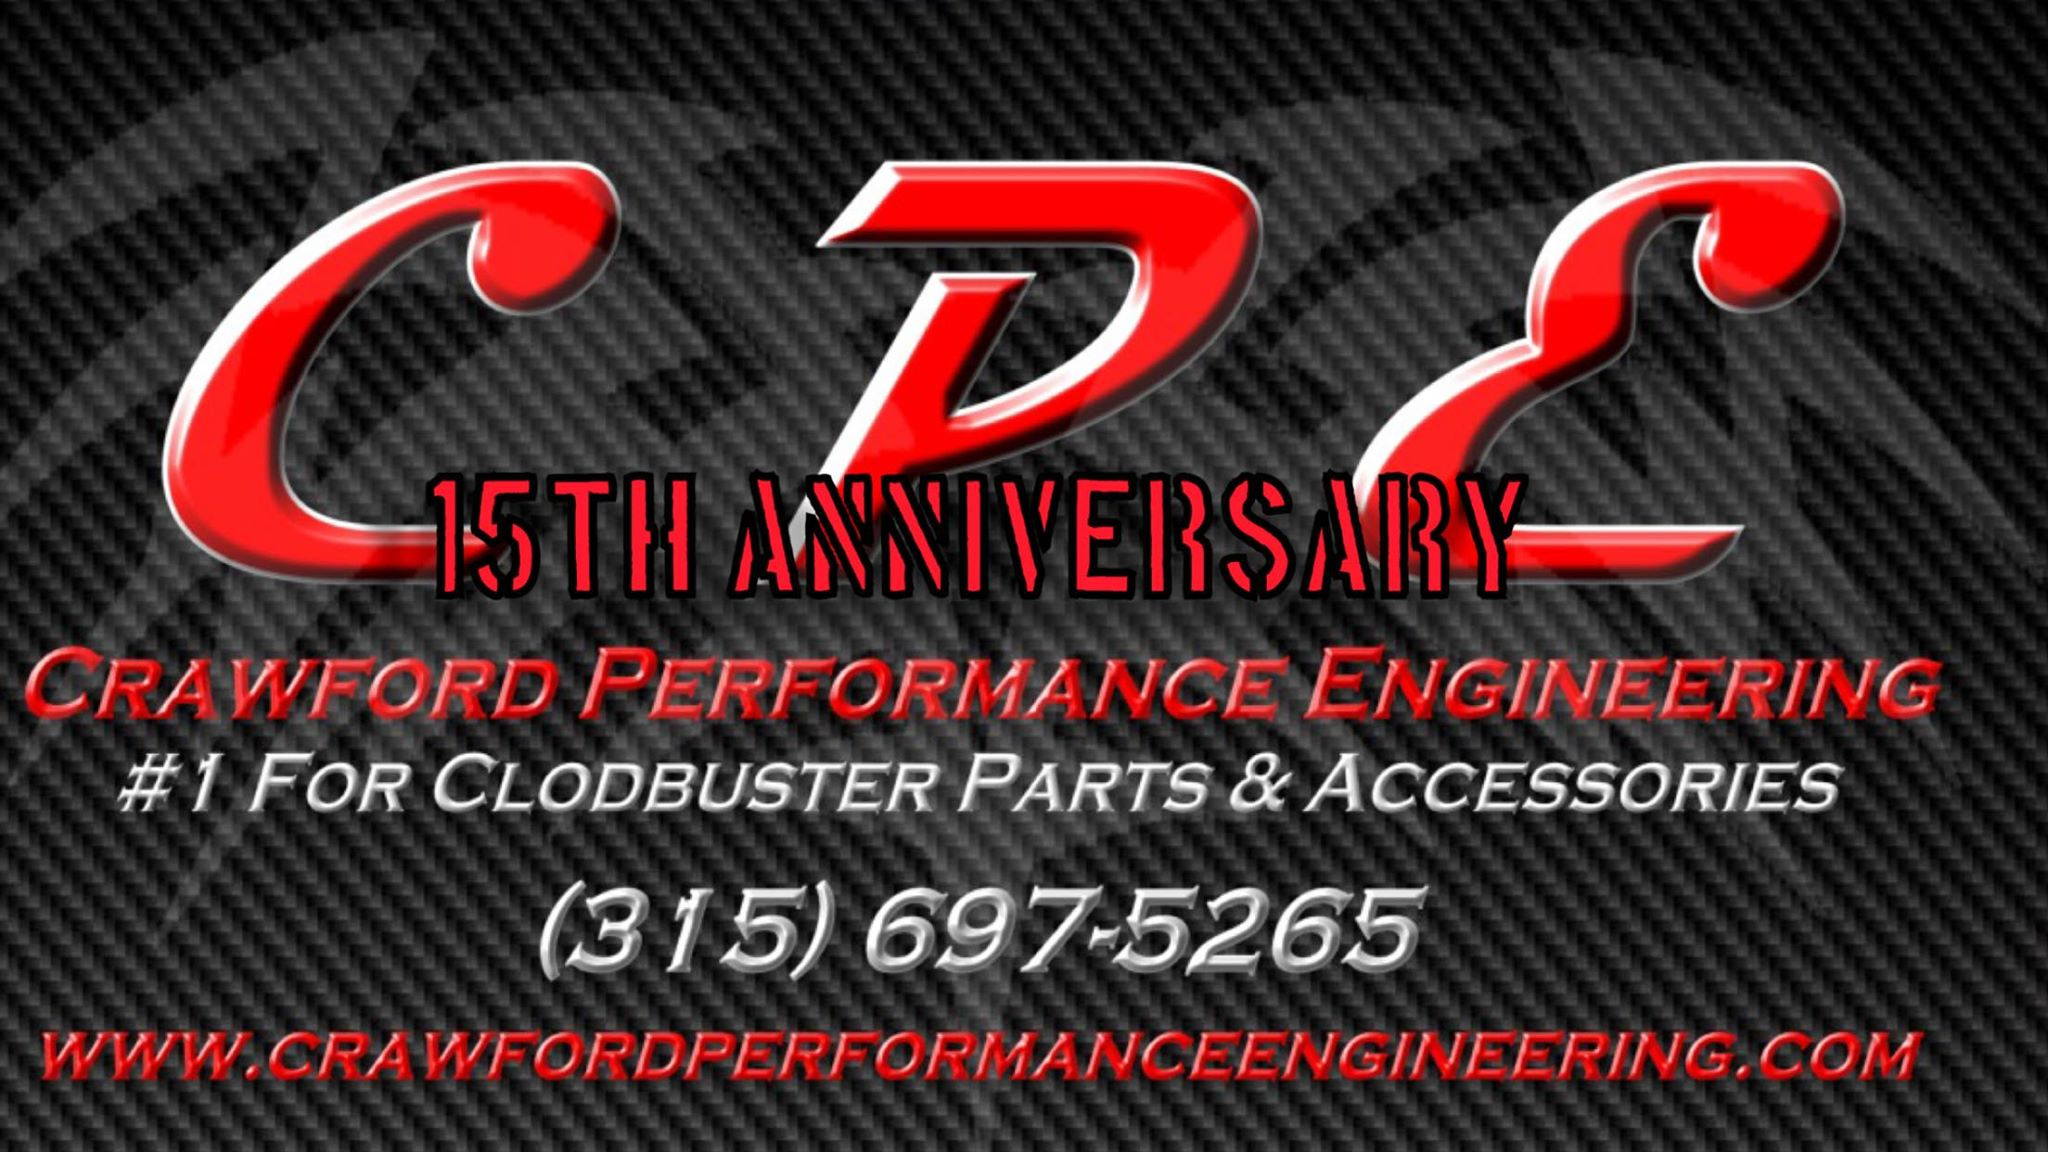 Crawford Performance Engineering